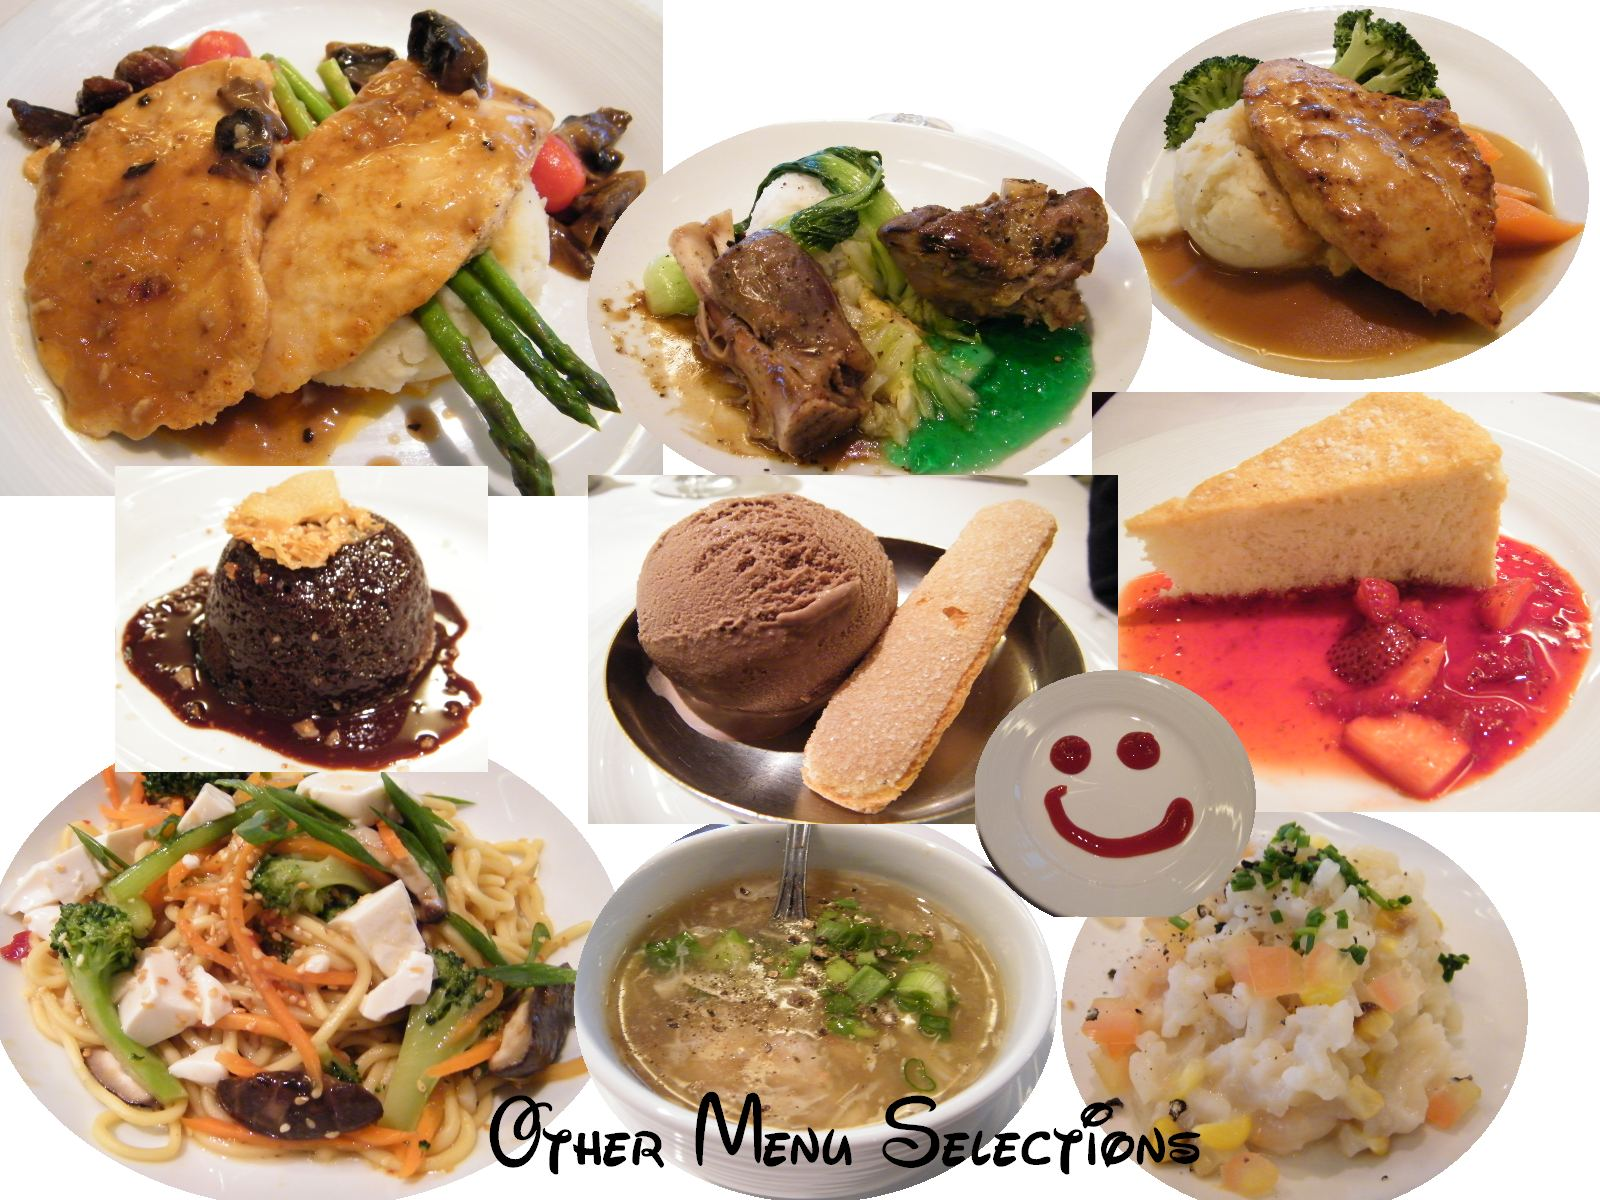 Traditional japanese wedding foods - Other Selection Include Chicken Breast With Herbs Northern Lamb Shanks Chicken Marsala Scallop Salad Warm Chocolate Cake Angel Cake And Chocolate Ice